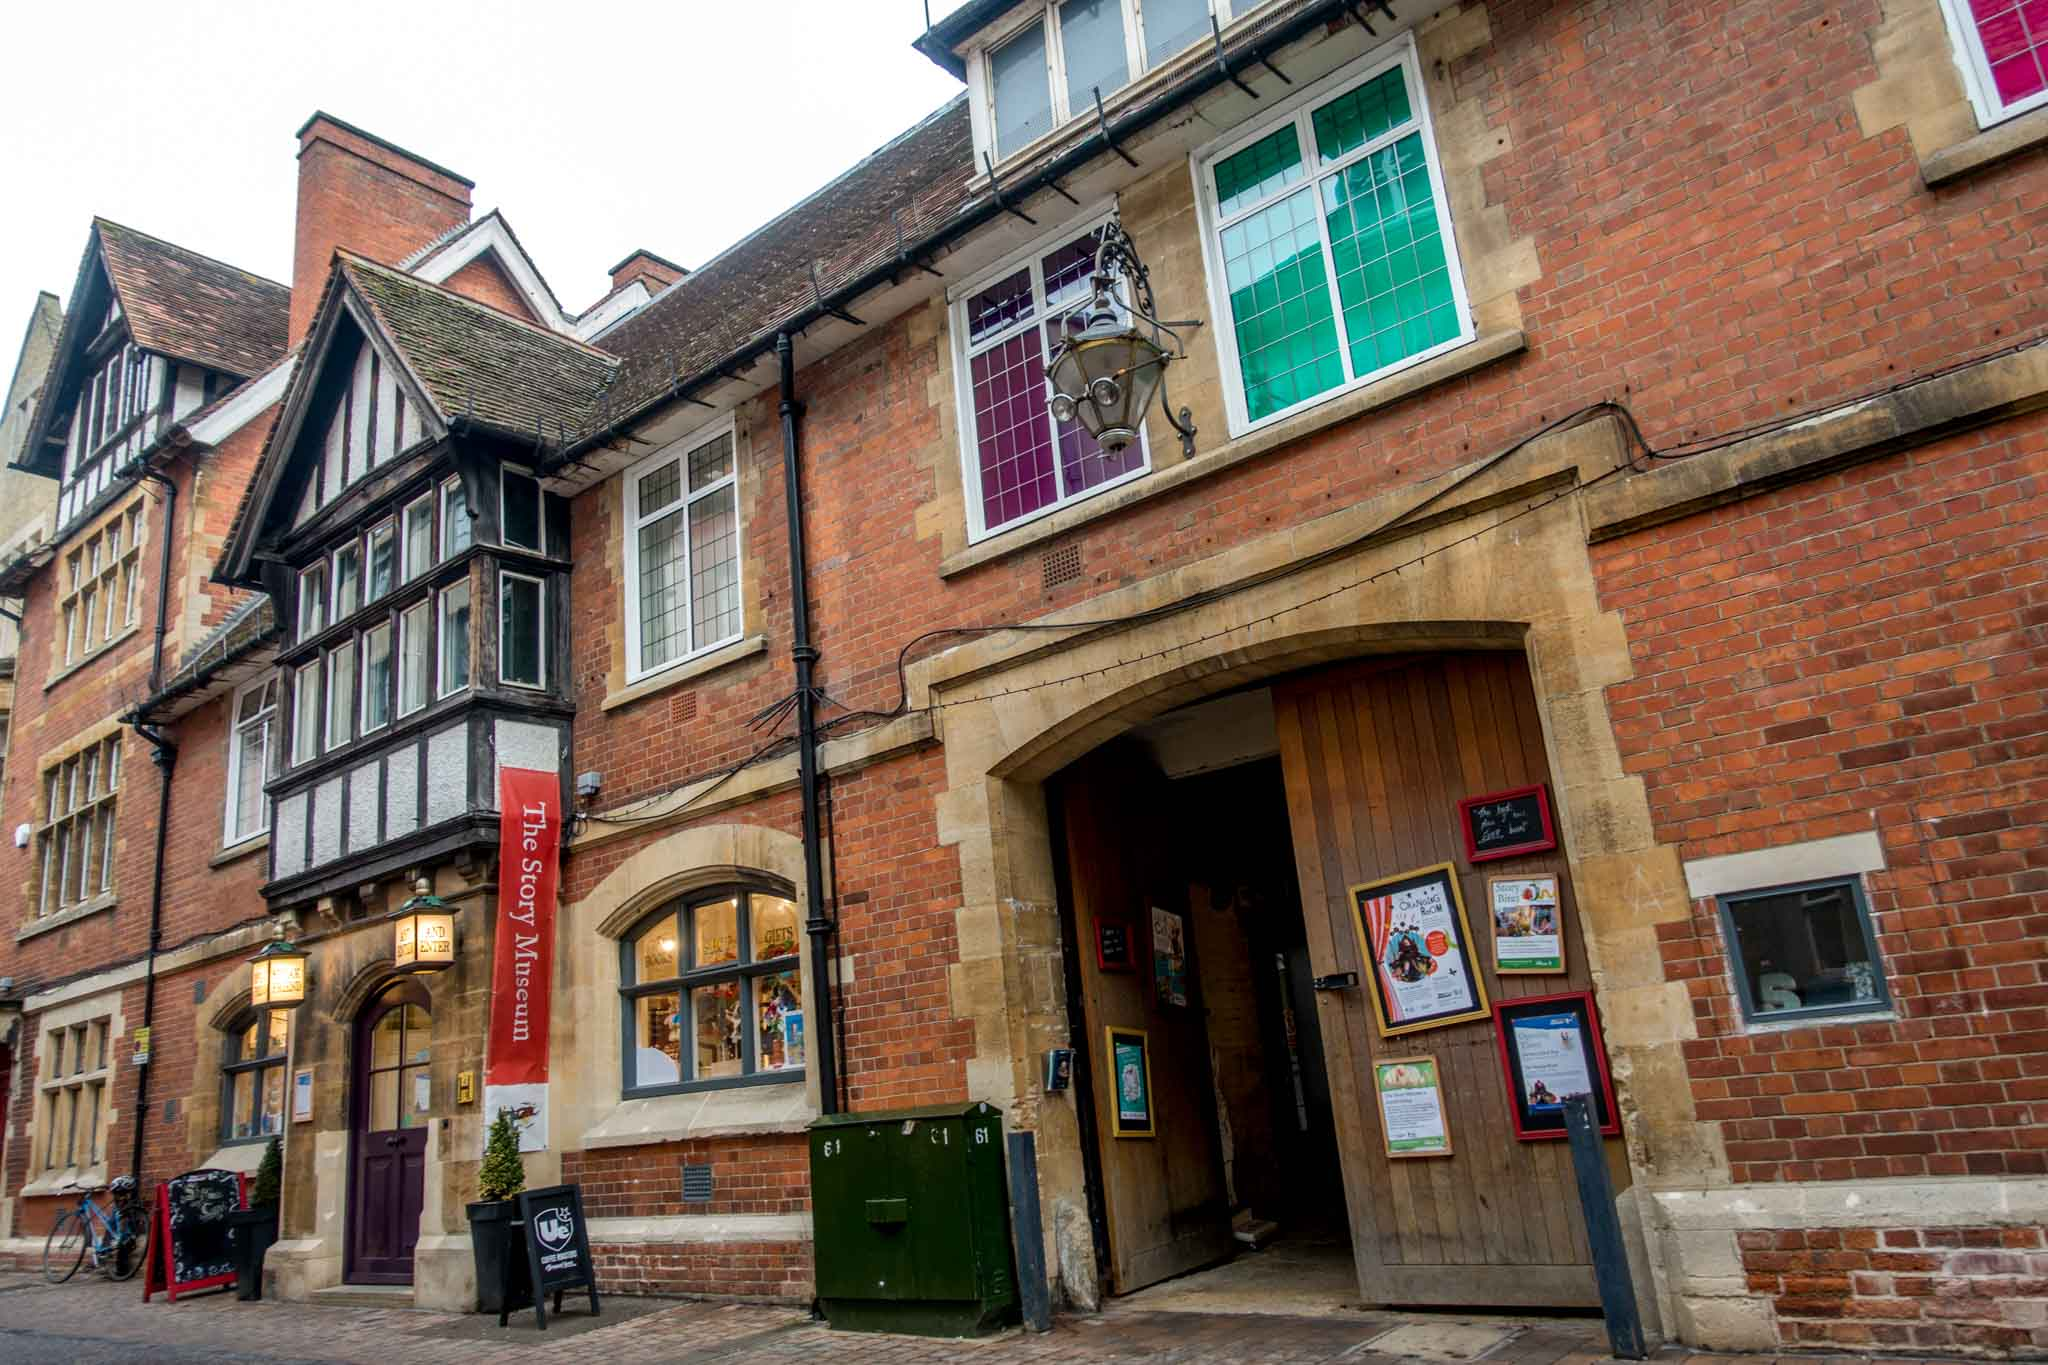 Wondering what to do in Oxford? Head to The Story Museum for a fun, unique experience